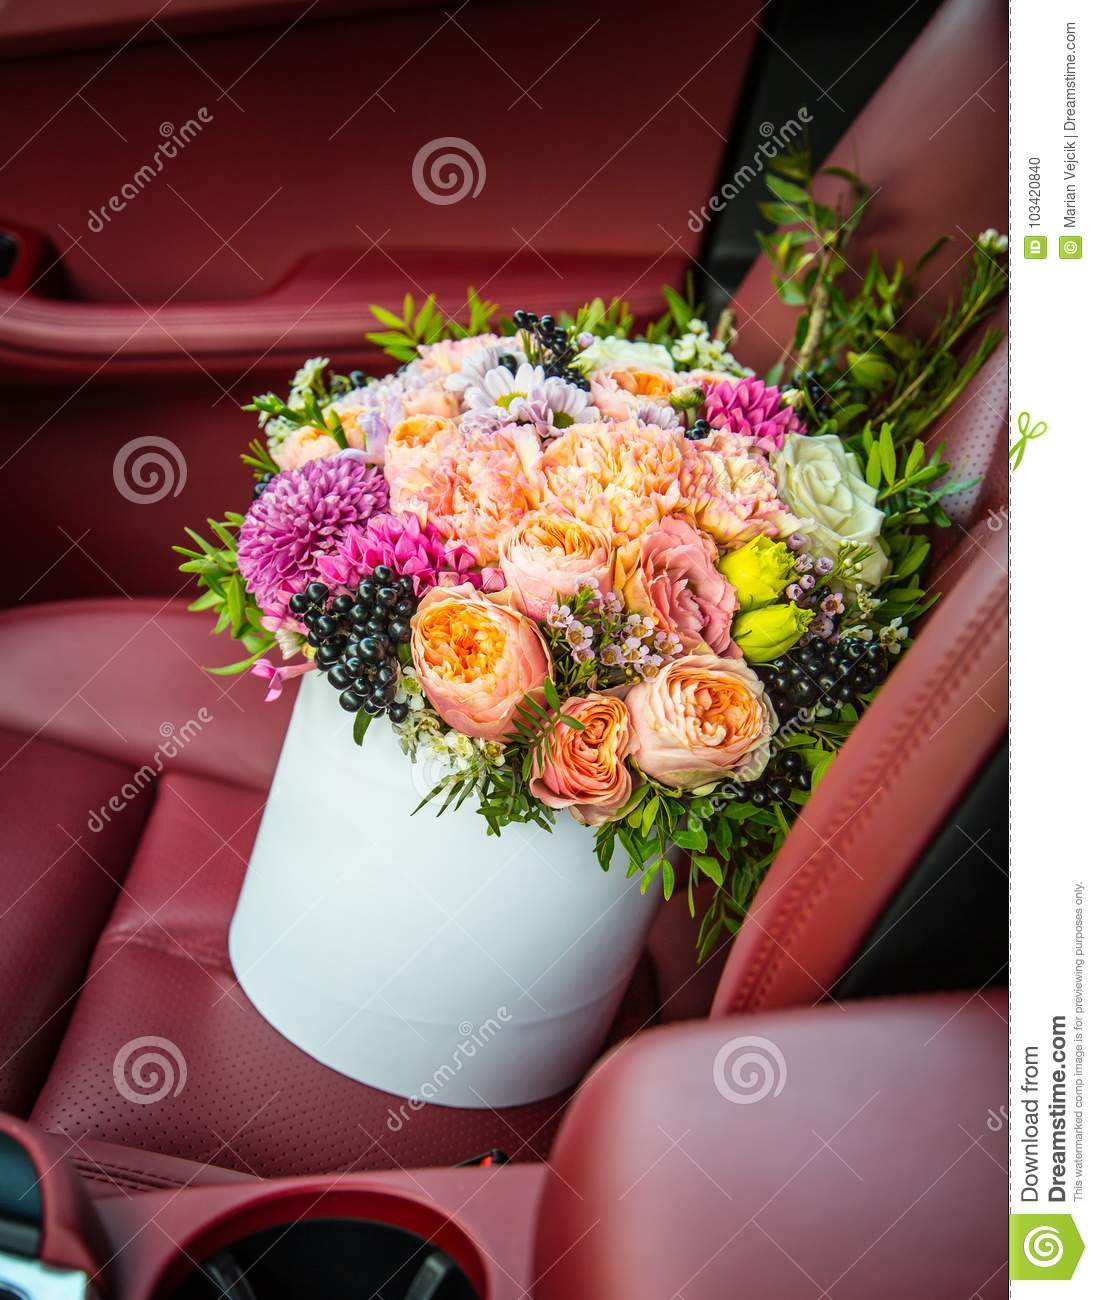 Bouquet Of Flowers Roses Luxury Gift Box In The Car Seat Stock Photo